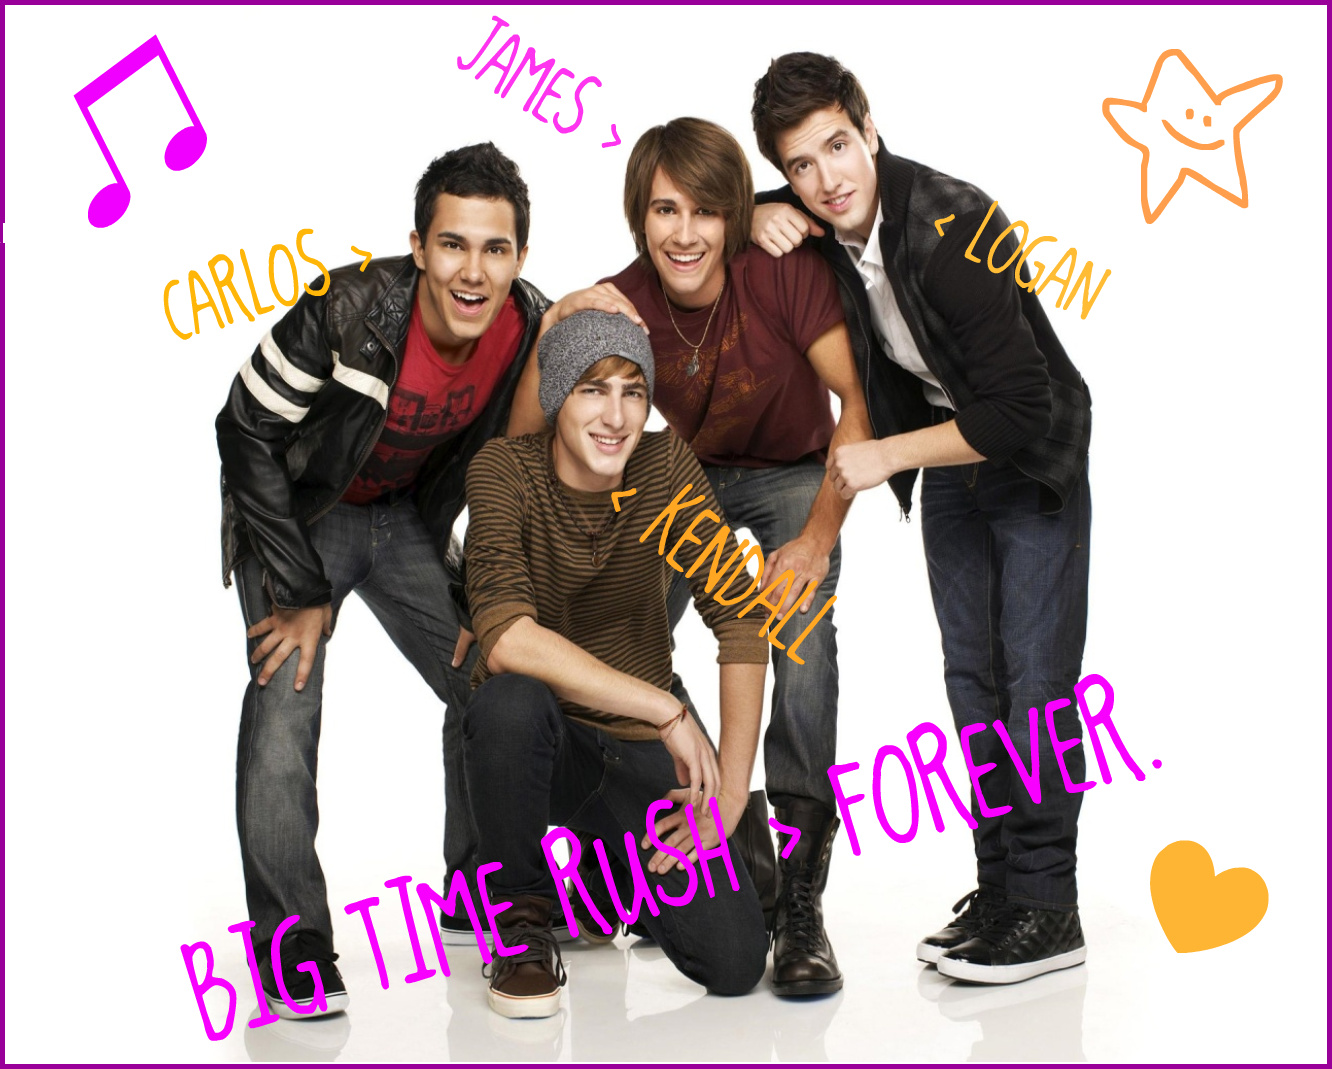 BIG TIME RUSH > FOREVER